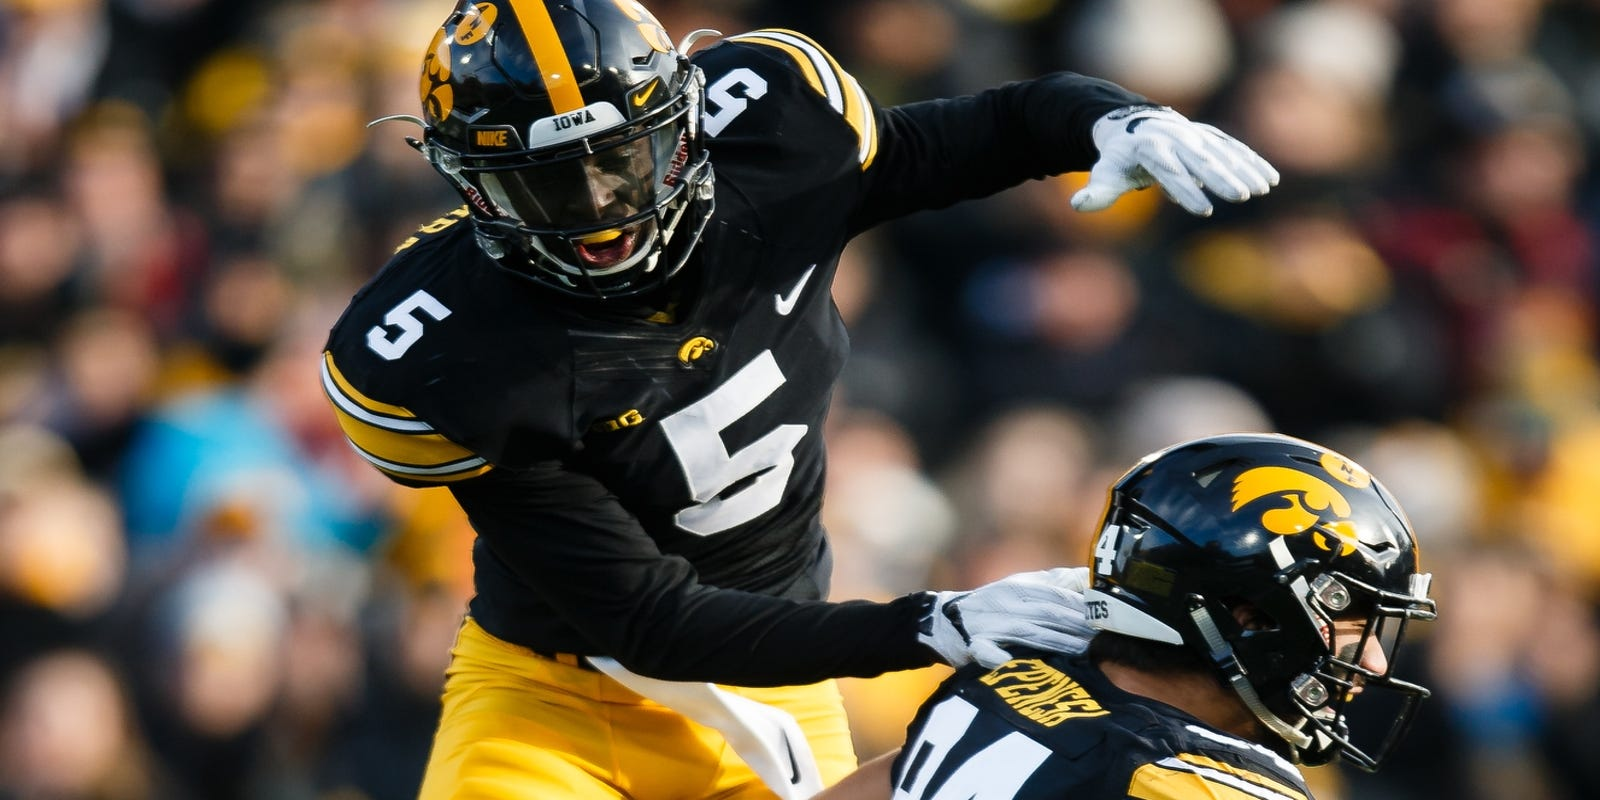 Manny Rugamba thrilled for return to Kinnick Stadium to face his old team